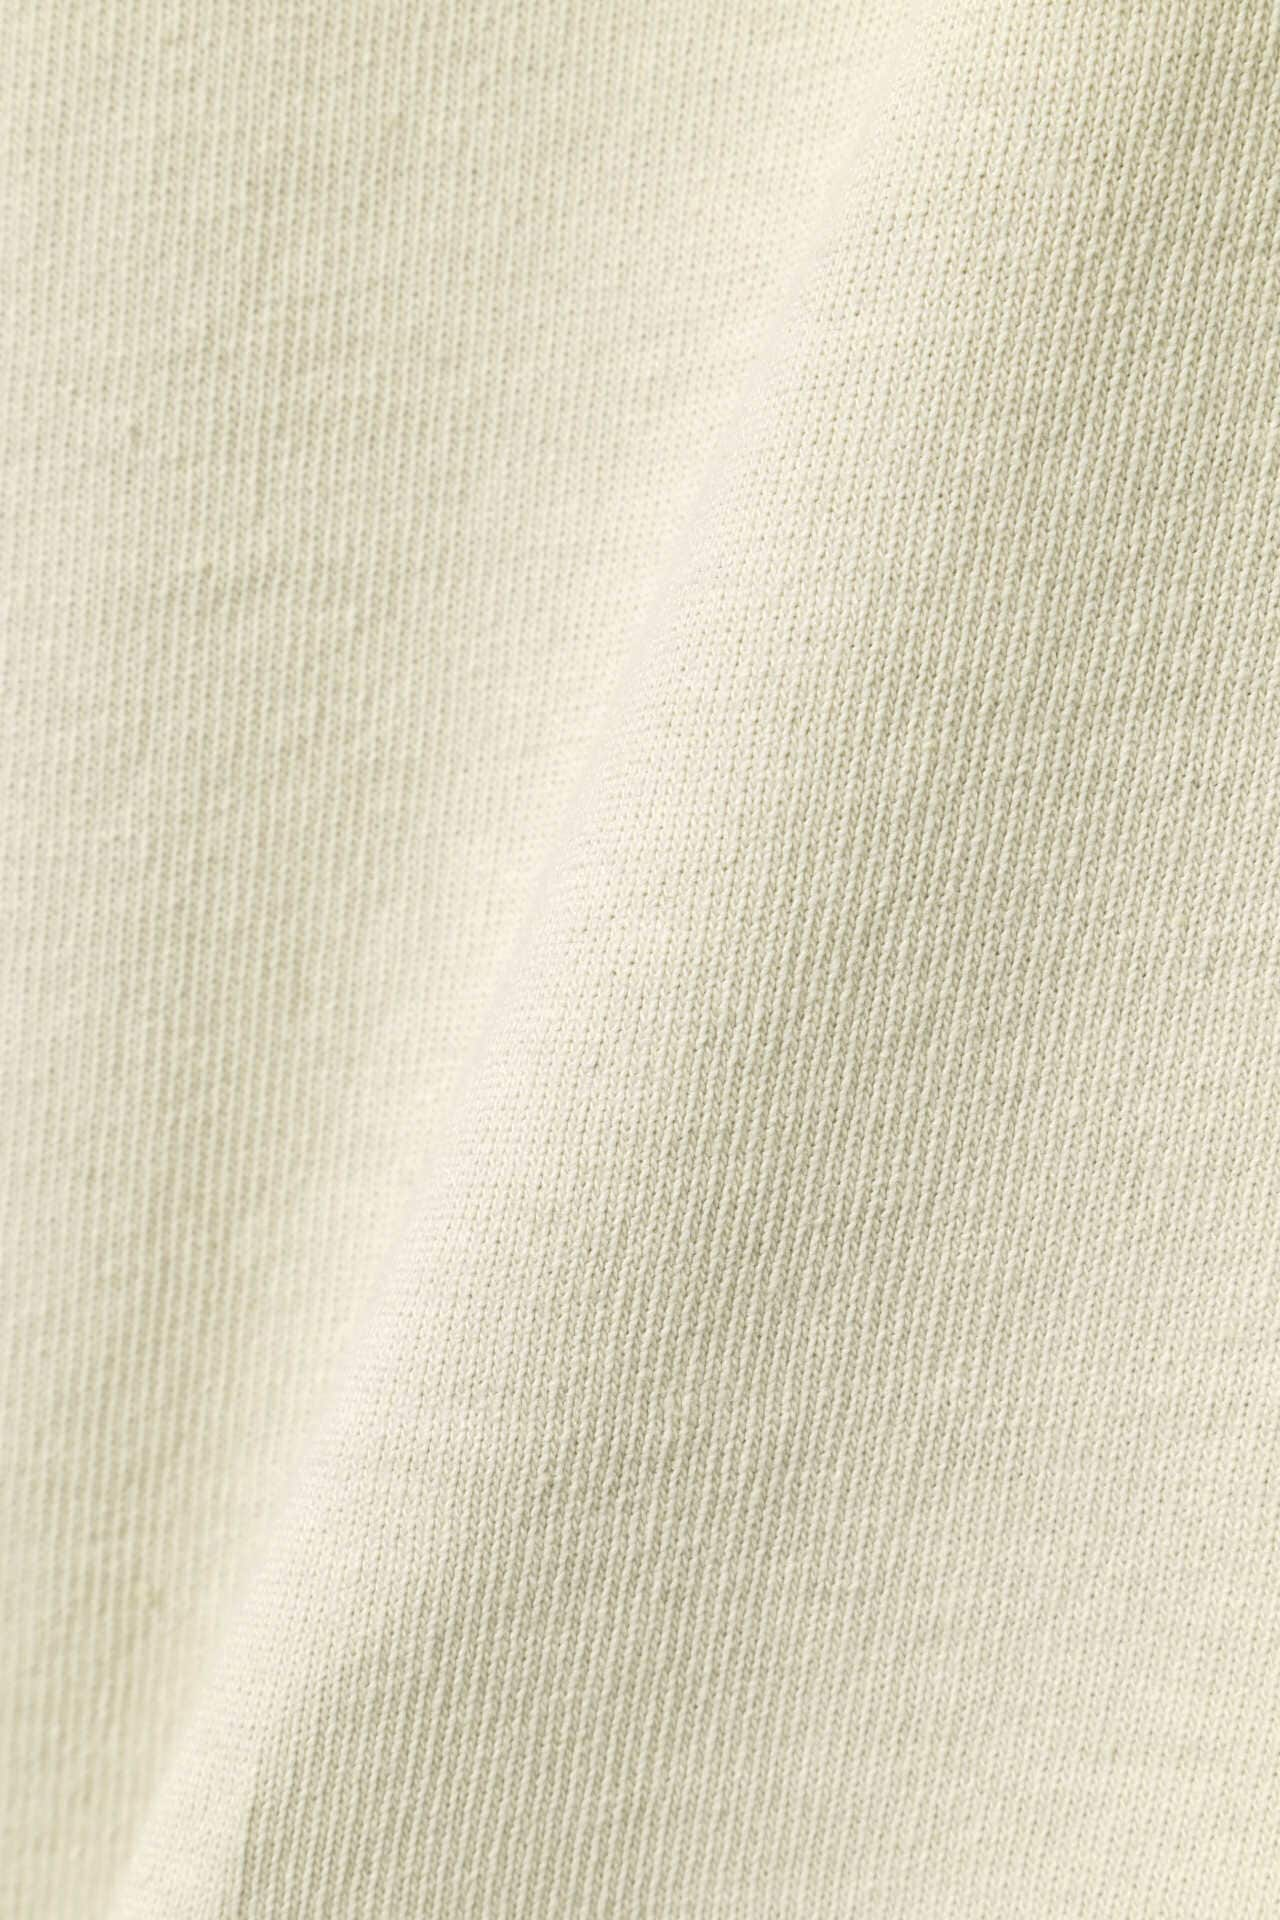 DRY COTTON JERSEY9